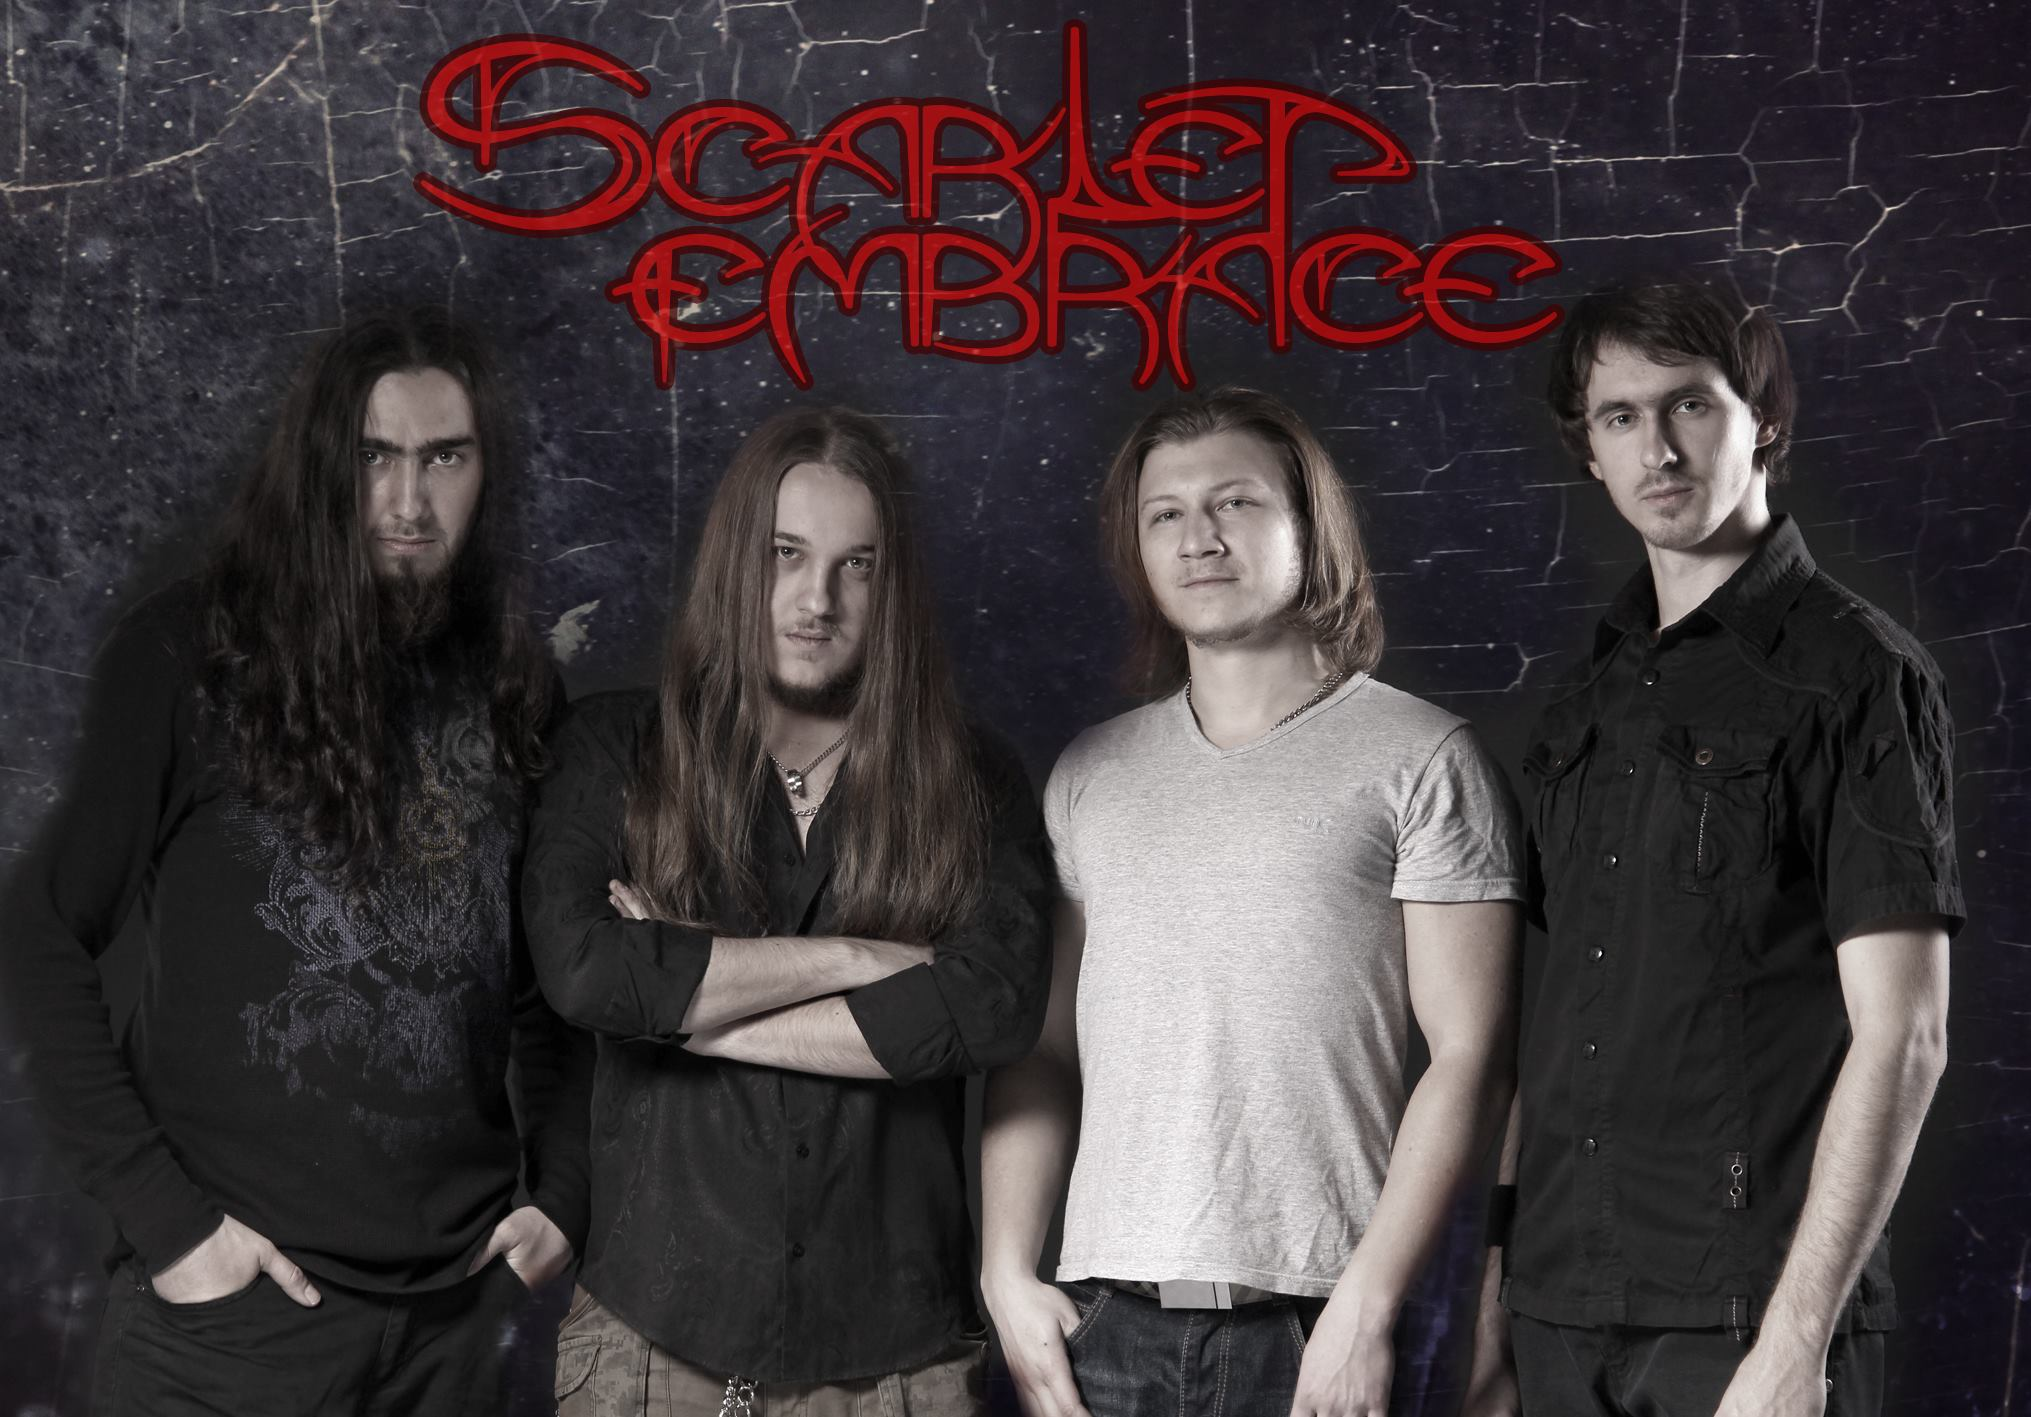 Merch of metal band The Scarlet Embrace